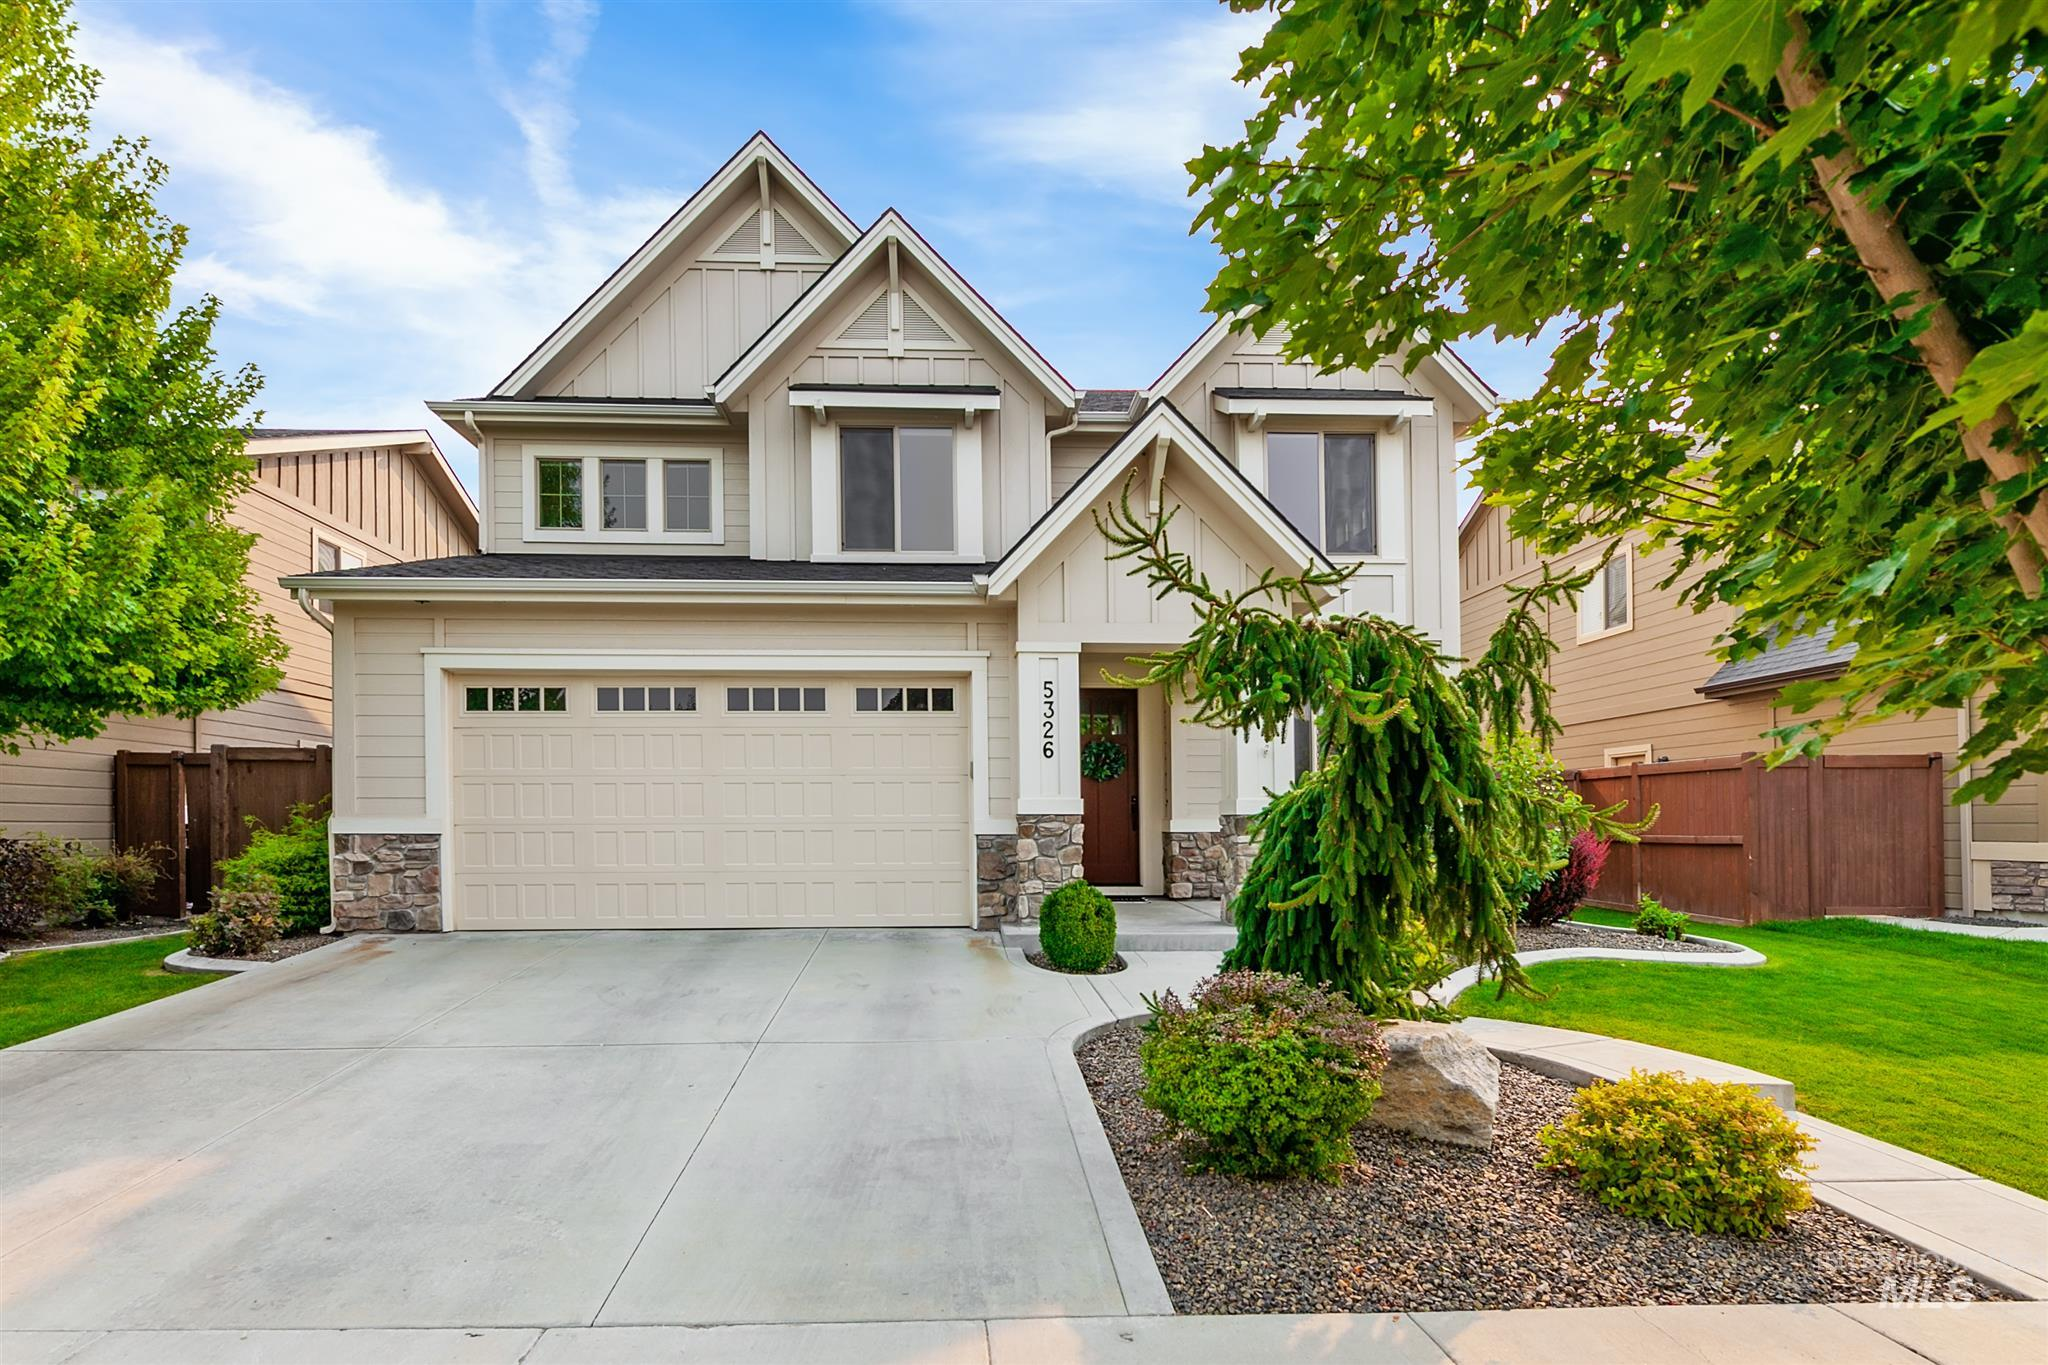 Multiple Offers. Seller is asking for highest and best by 9/18 at 9:00 pm. Open floor plan with den, bonus room, 3 bedrooms, and 2.5 baths. Includes granite, hardwood & tile floors, custom Alder cabinets, SS appliances, built-ins, and gas fireplace. Coveted East facing back yard and patio. Right across from one of the four pools in the prestigious Paramount subdivision that boasts an outstanding community center. Steps away from all 3 schools.